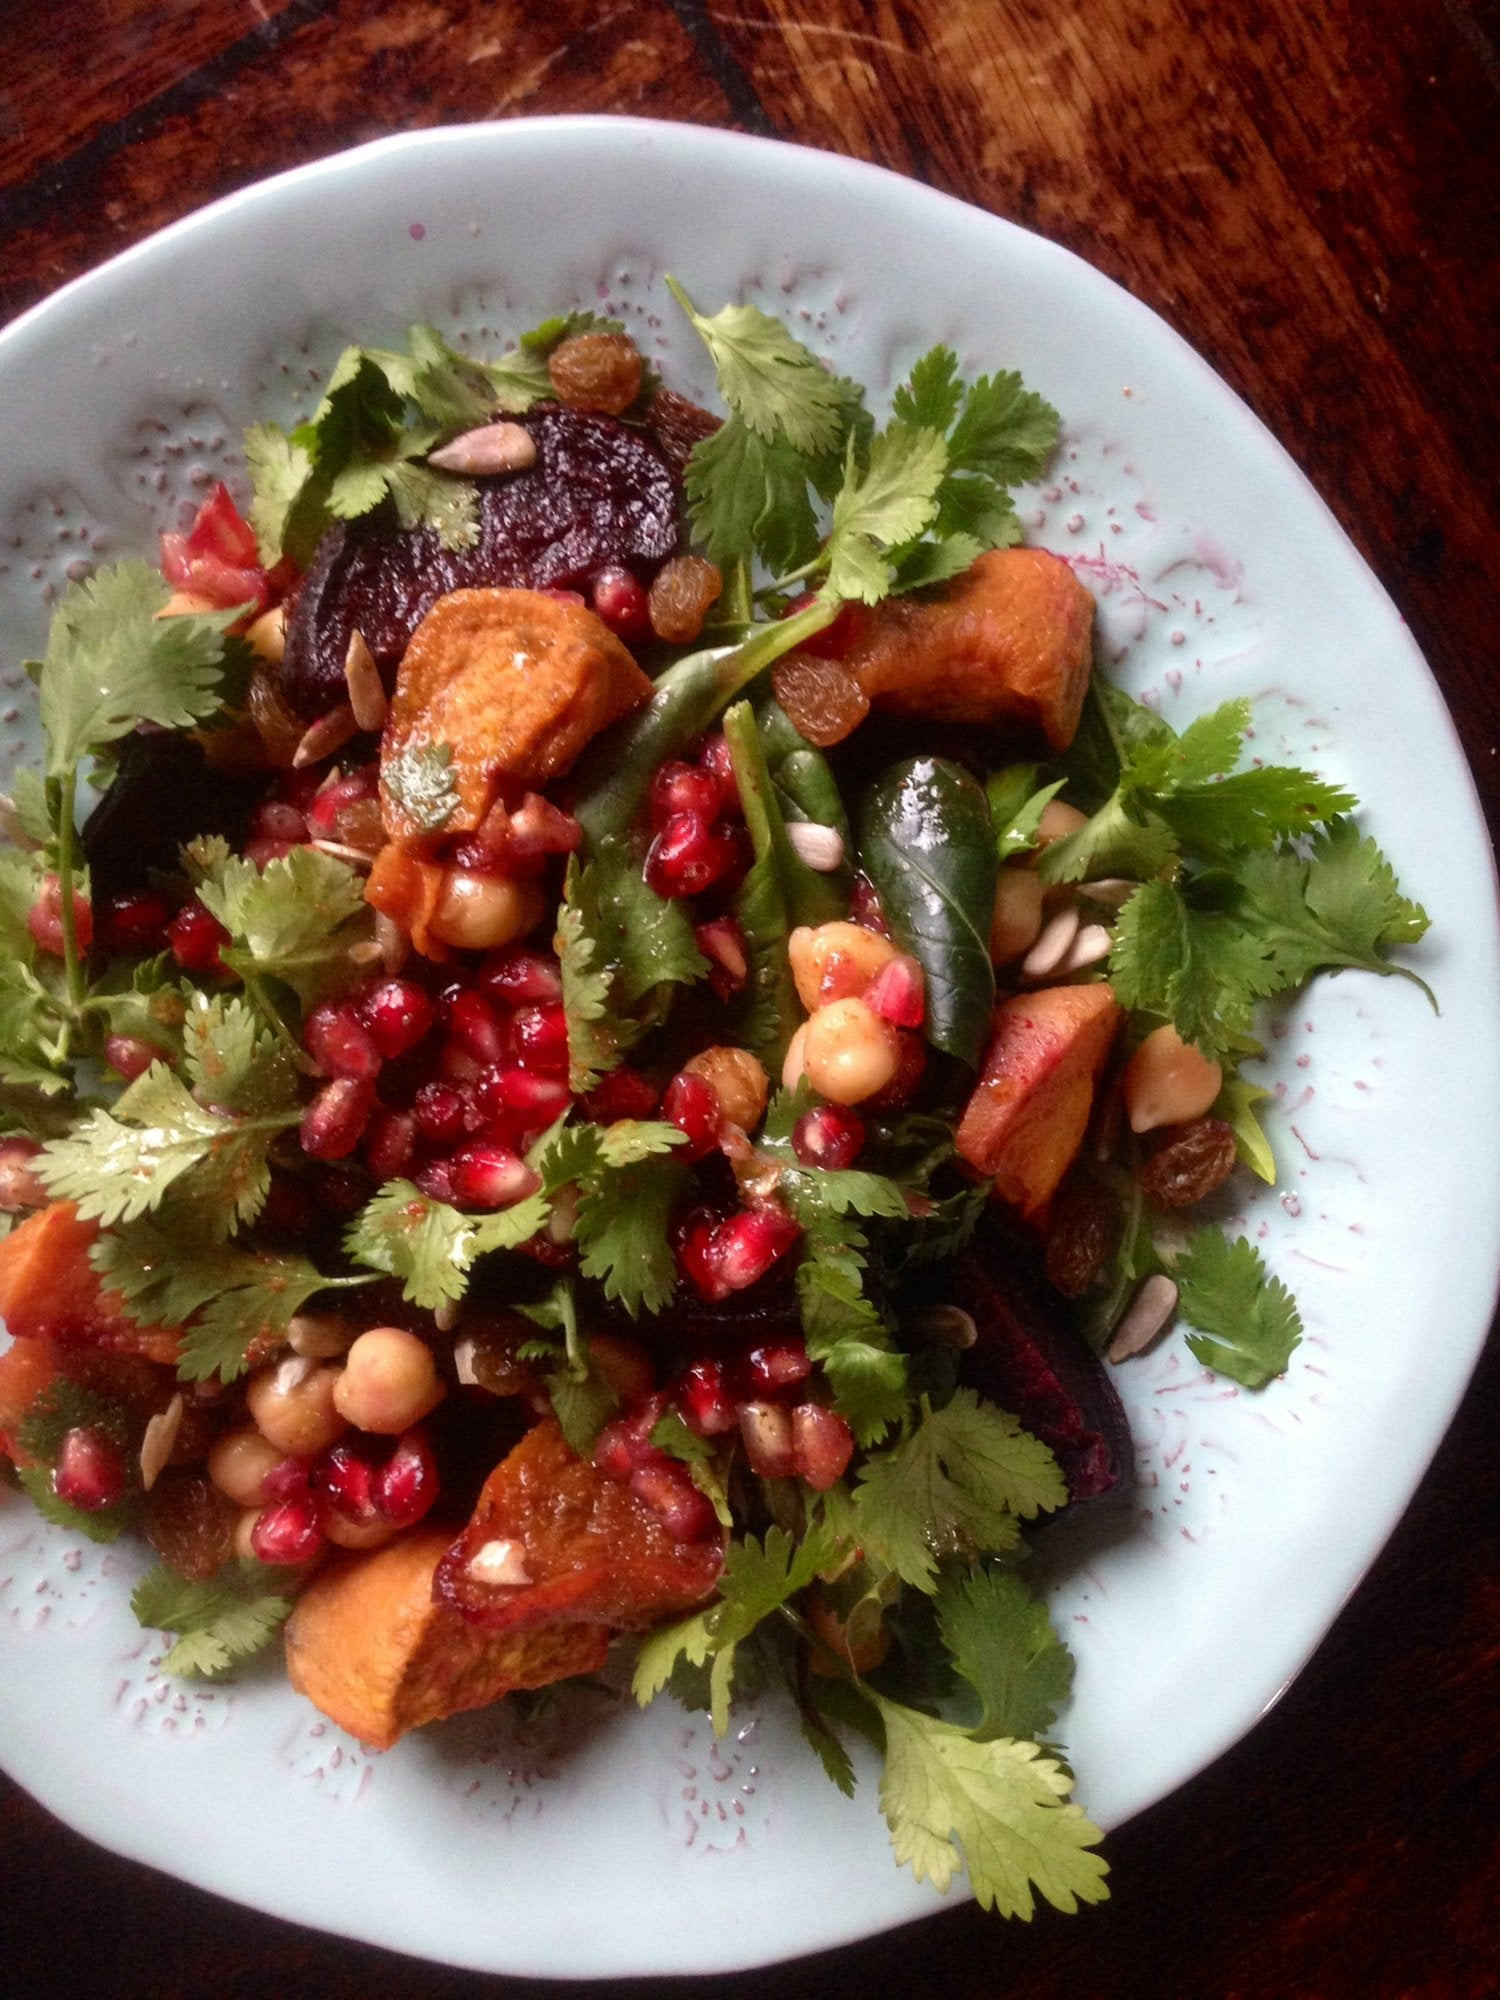 Moroccan Chickpea, Baked Beetroot and Sweet Potato Salad, with a Pomegranate and Orange Dressing